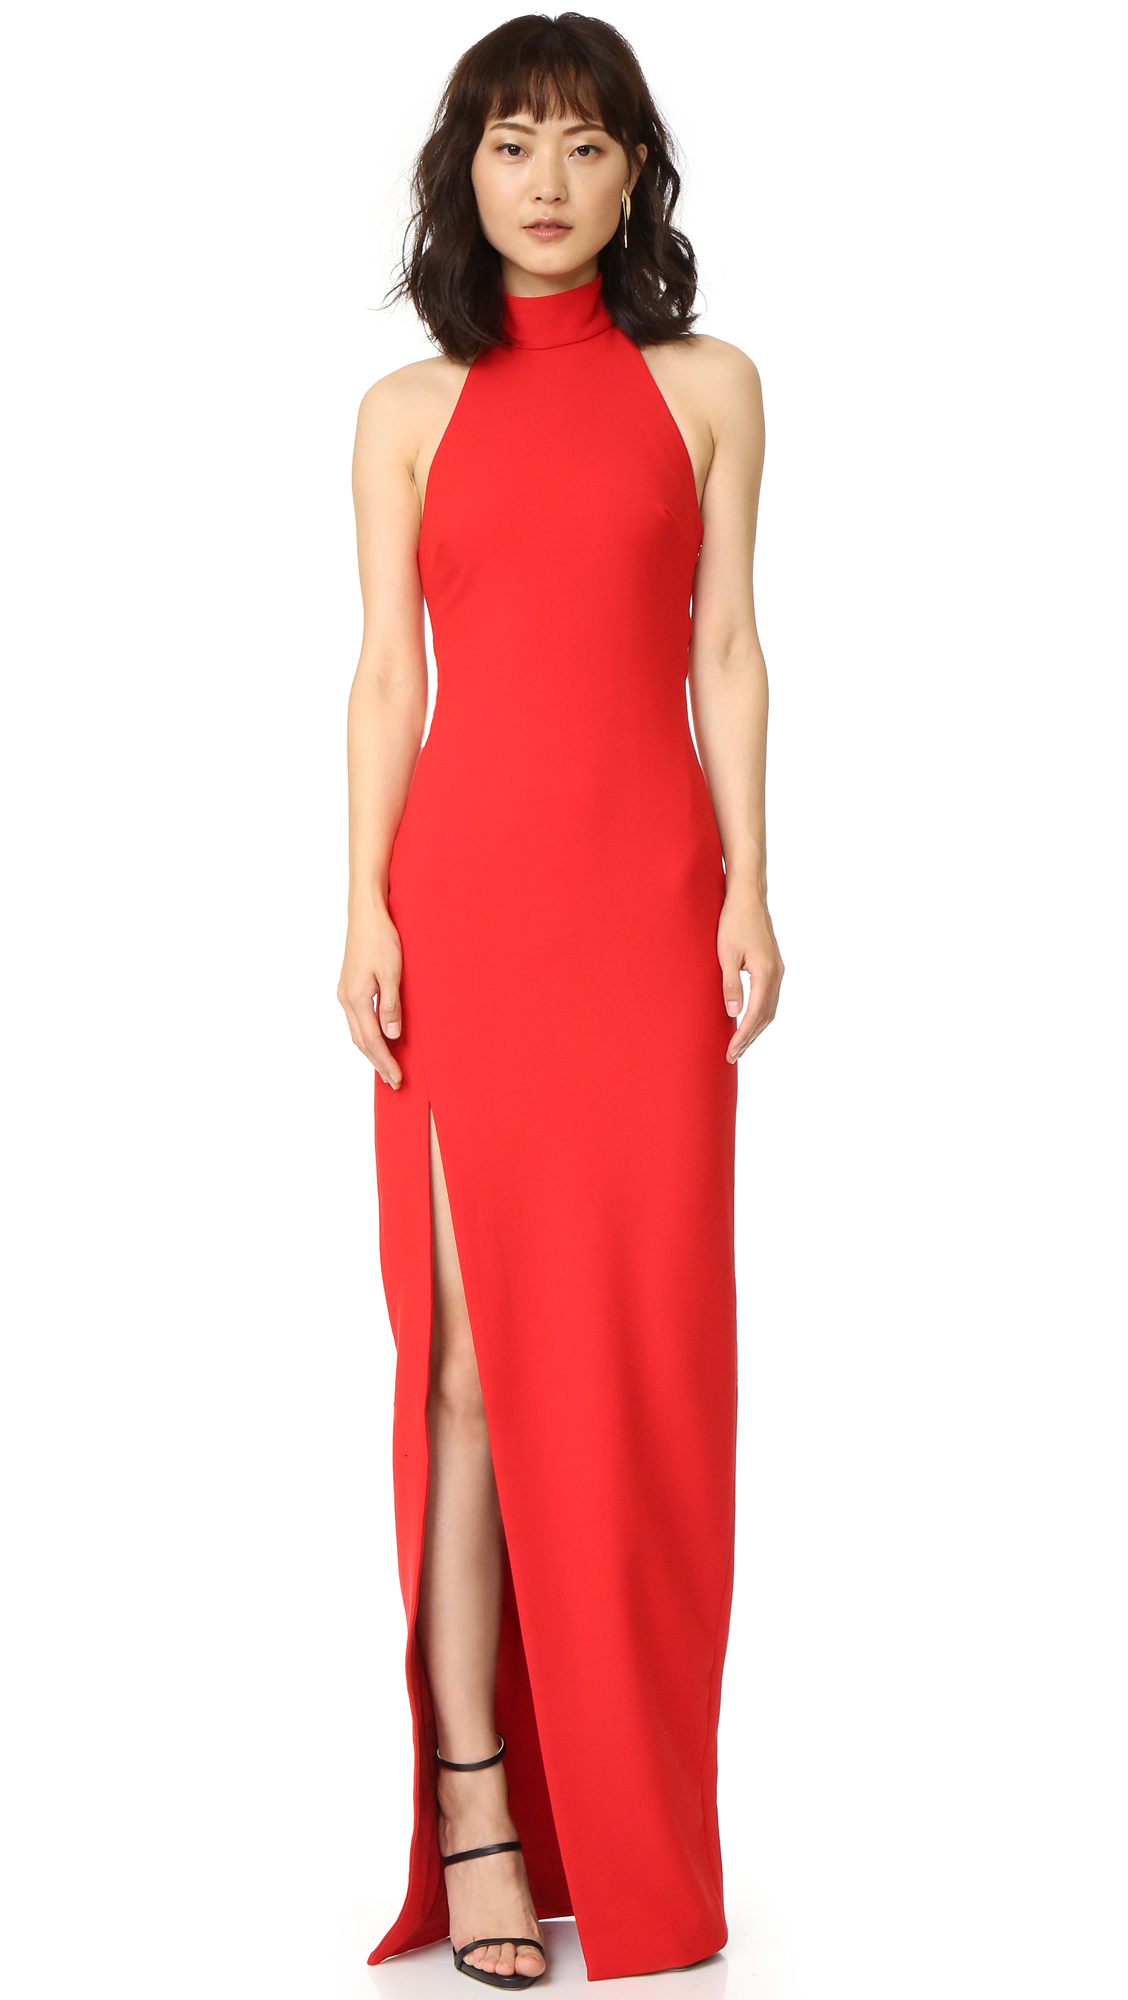 A deep side slit and a back cutout accent this bold Cinq a Sept dress. Button back closures at collar. Hidden side zip. Sleeveless. Lined. Fabric: Suiting. Shell: 54% polyester/39% viscose/7% elastane. Lining: 100% polyester. Dry clean. Imported,